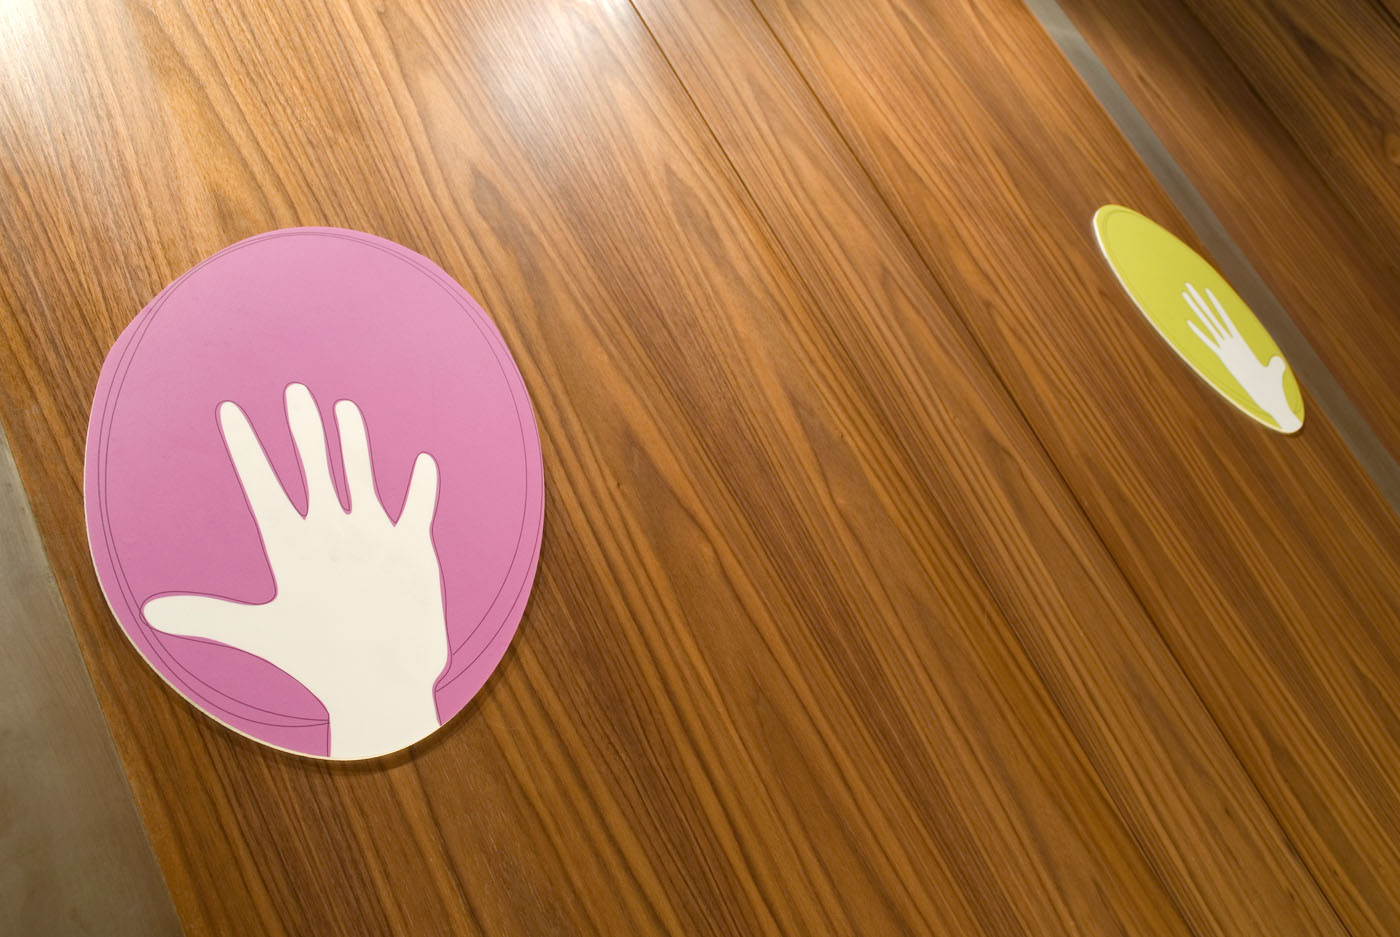 Workspace Design - Action for Children (4)